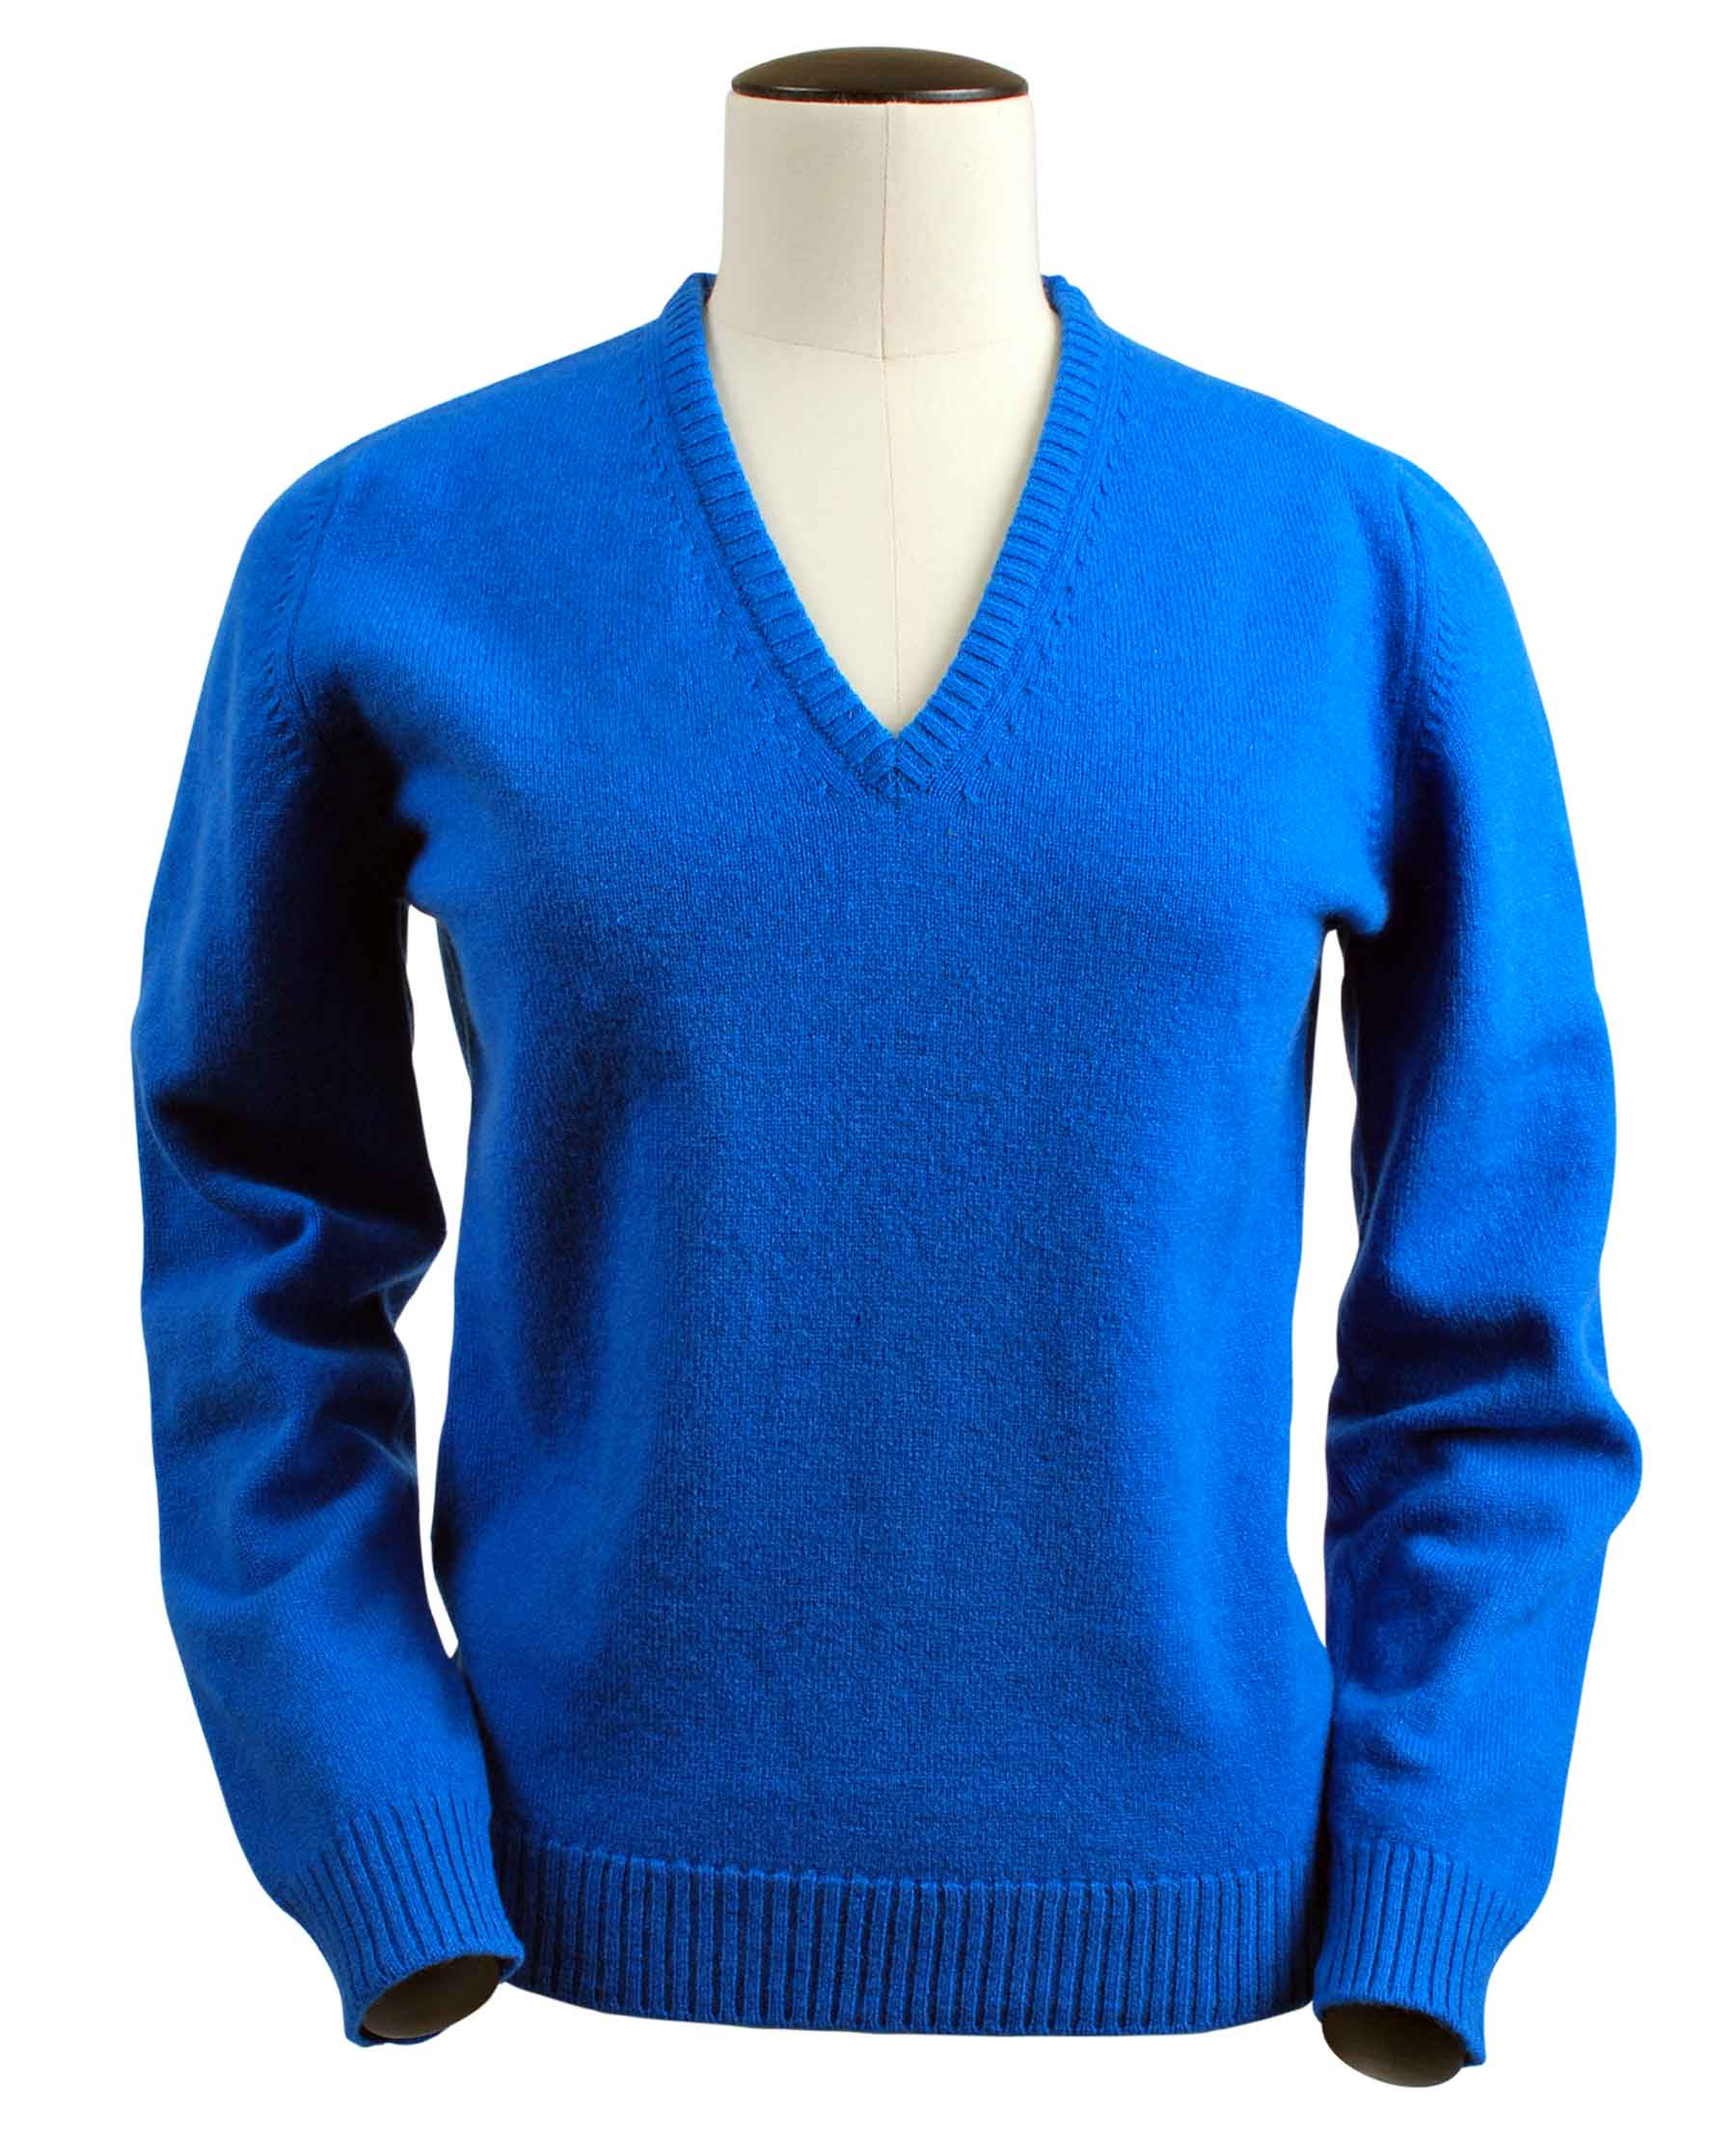 Wendi, Couleur Casino, Pull col V en 100% lambswool - Vêtements laine geelong